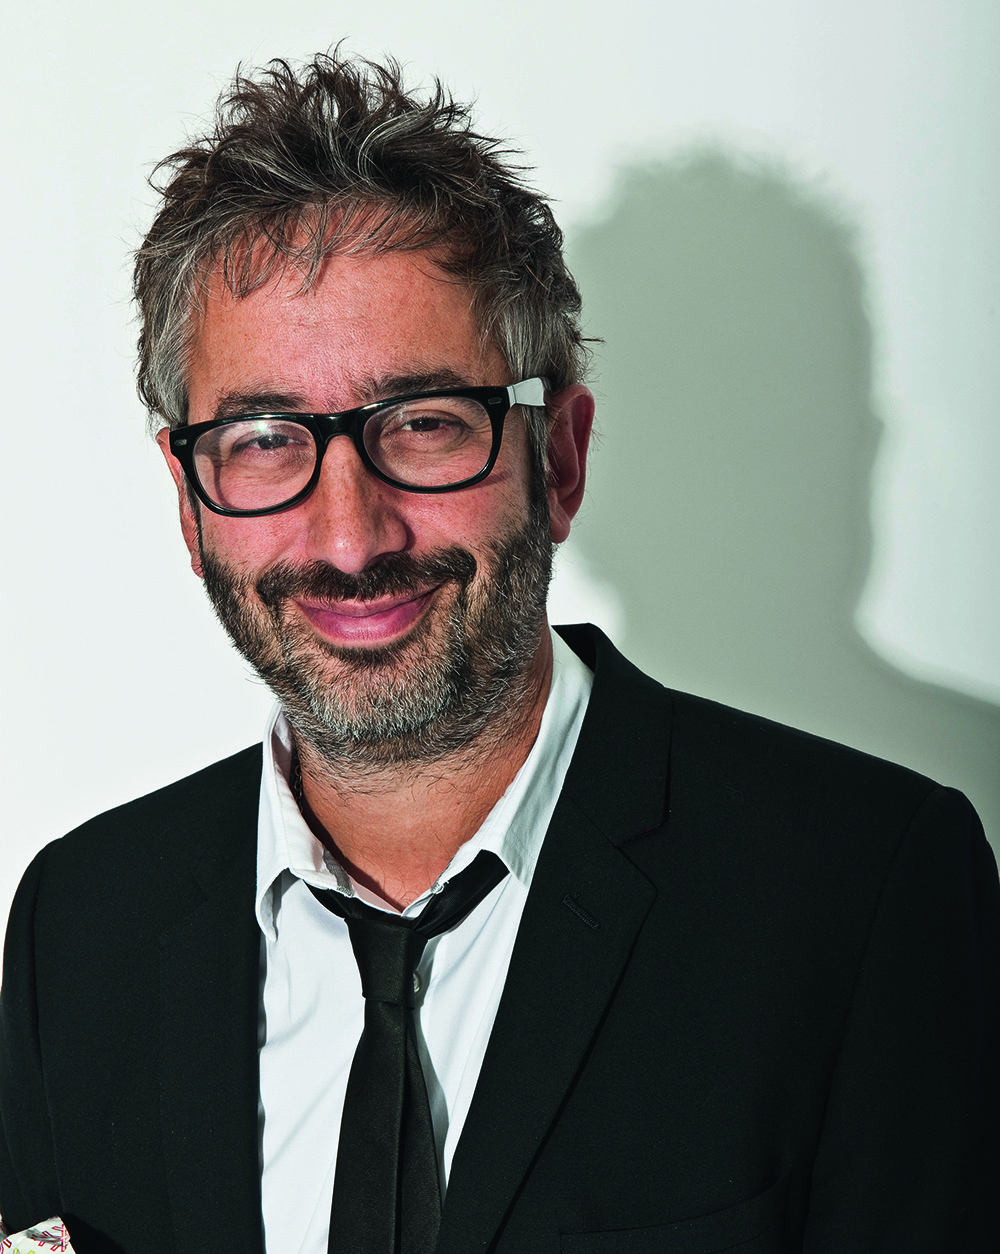 David Baddiel-CS-2020-1-21